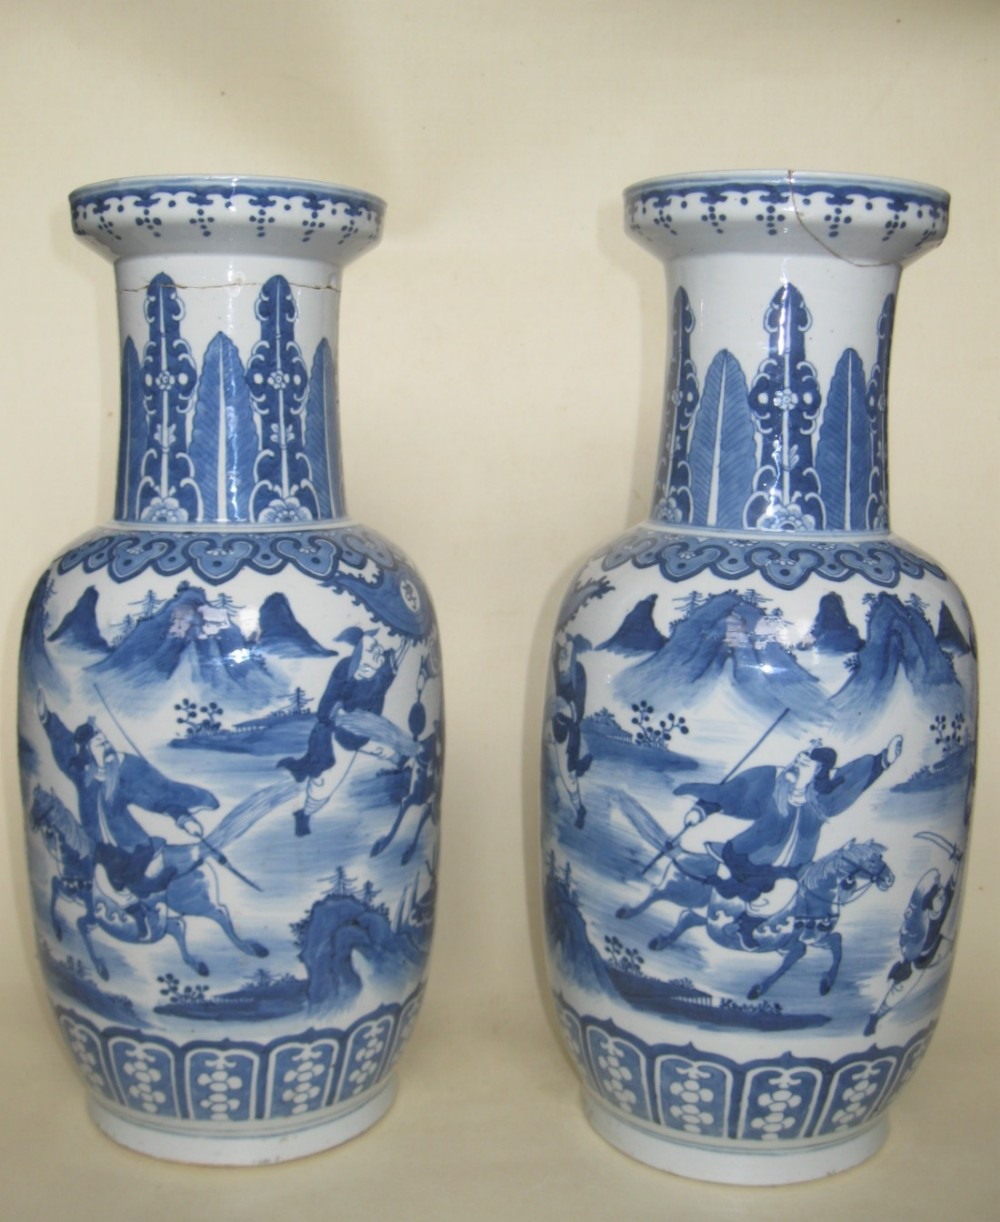 Chinese qing dynasty pair of large blue white rouleau vases chinese qing dynasty pair of large blue white rouleau vases circa 1800s reviewsmspy